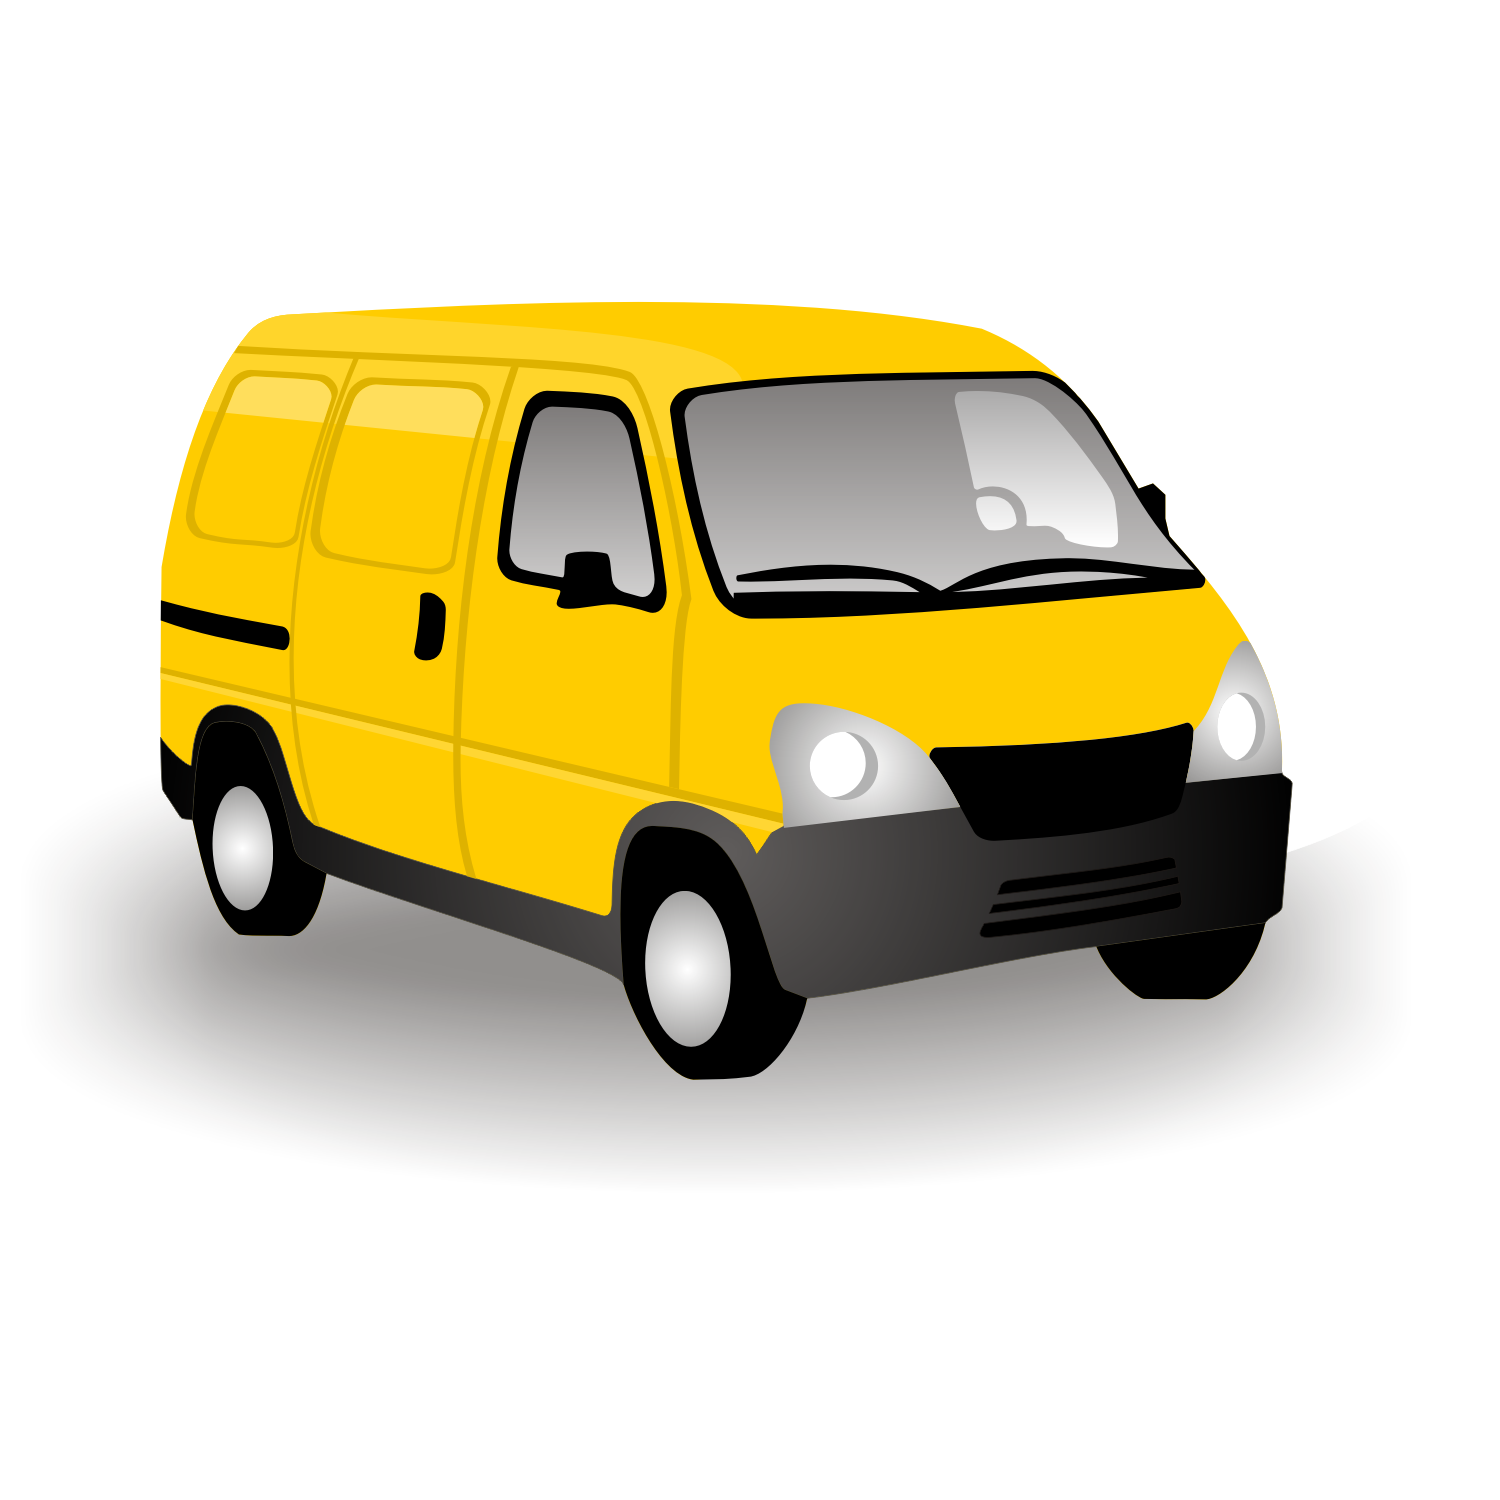 Free Van Cliparts, Download Free Clip Art, Free Clip Art on.